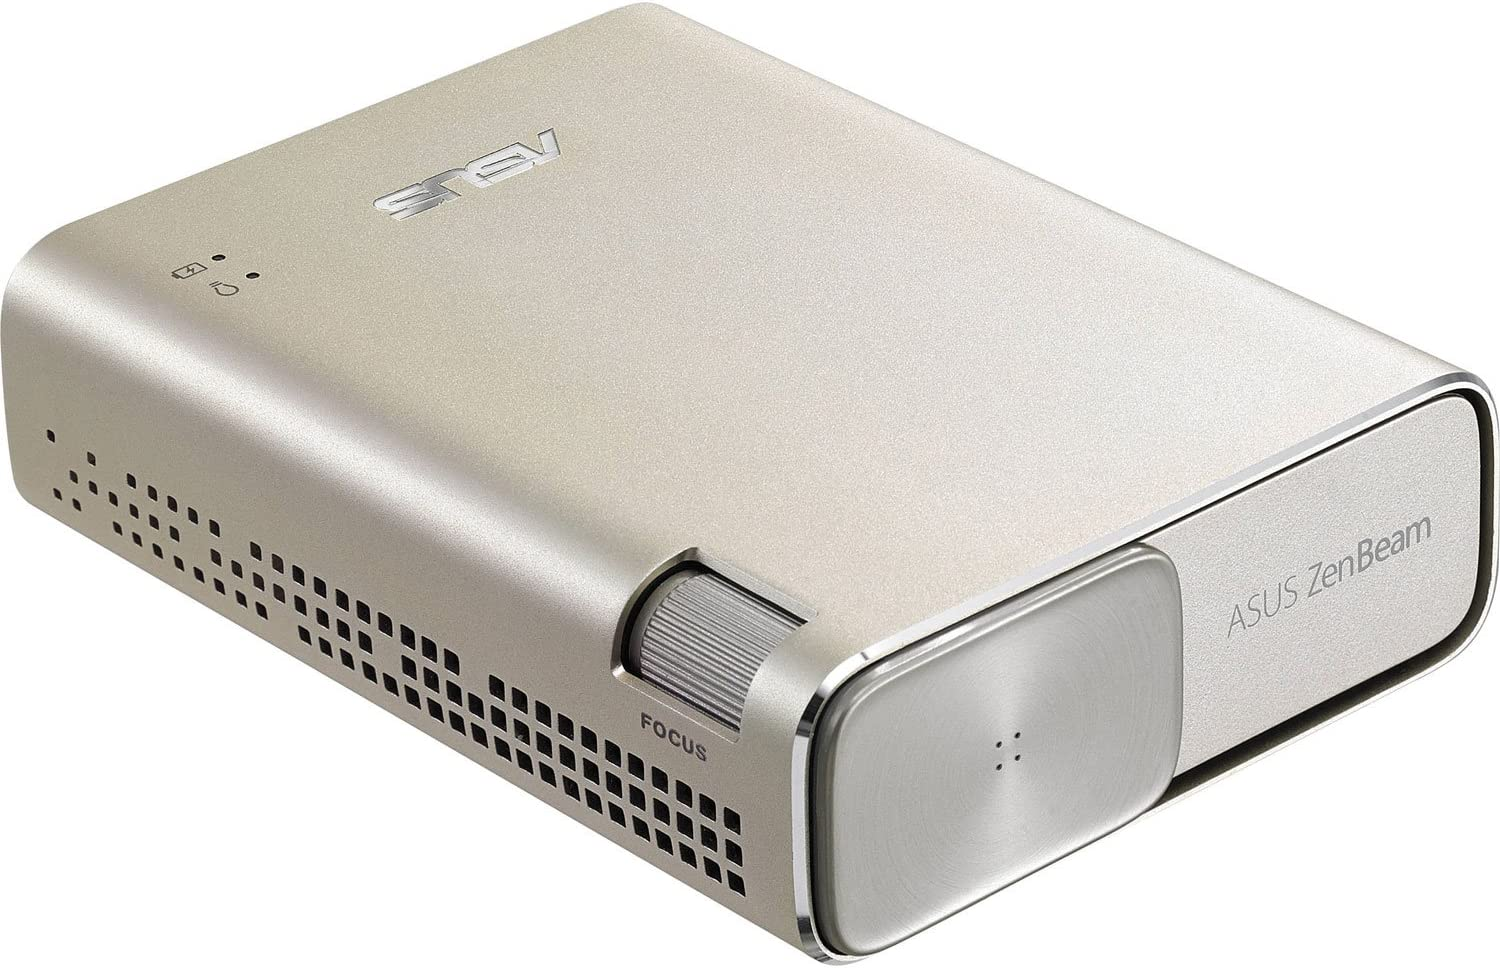 ASUS ZenBeam Go E1Z WVGA Plug-and-Play (Android/Windows) Micro-USB Pico Pocket LED Projector